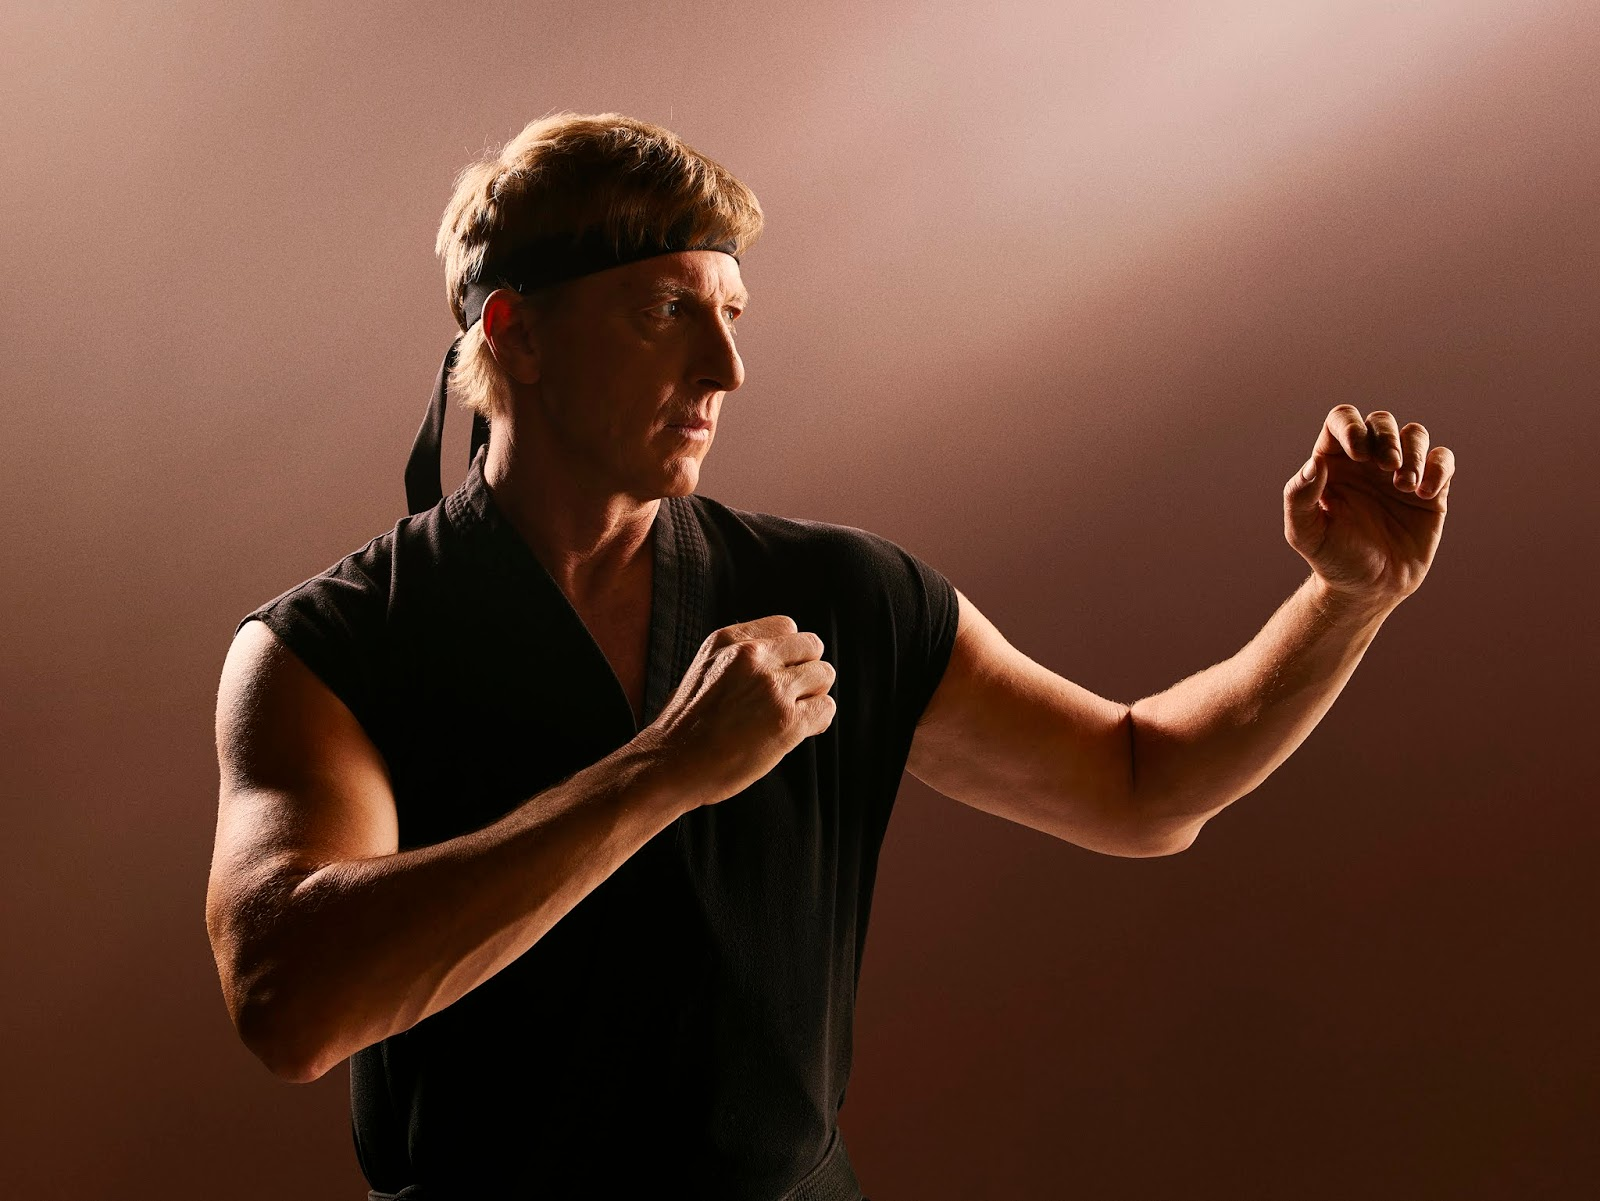 Tons Of New Cobra Kai: Season 2 Images - sandwichjohnfilms